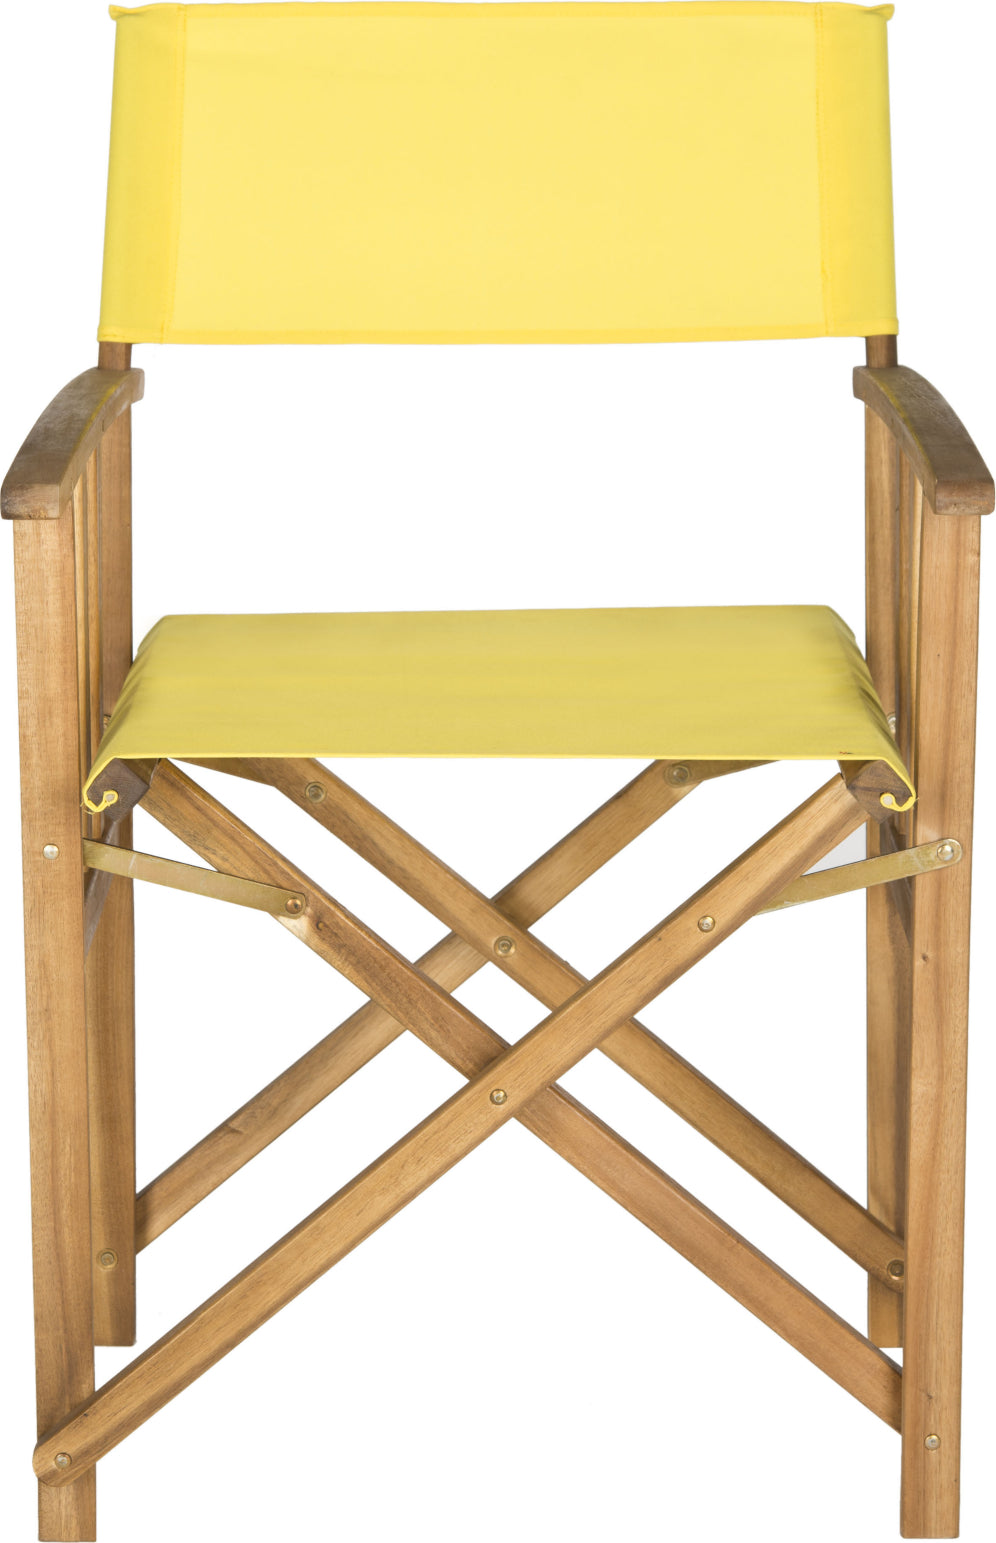 Safavieh Laguna Director Chair Teak/Yellow Furniture main image